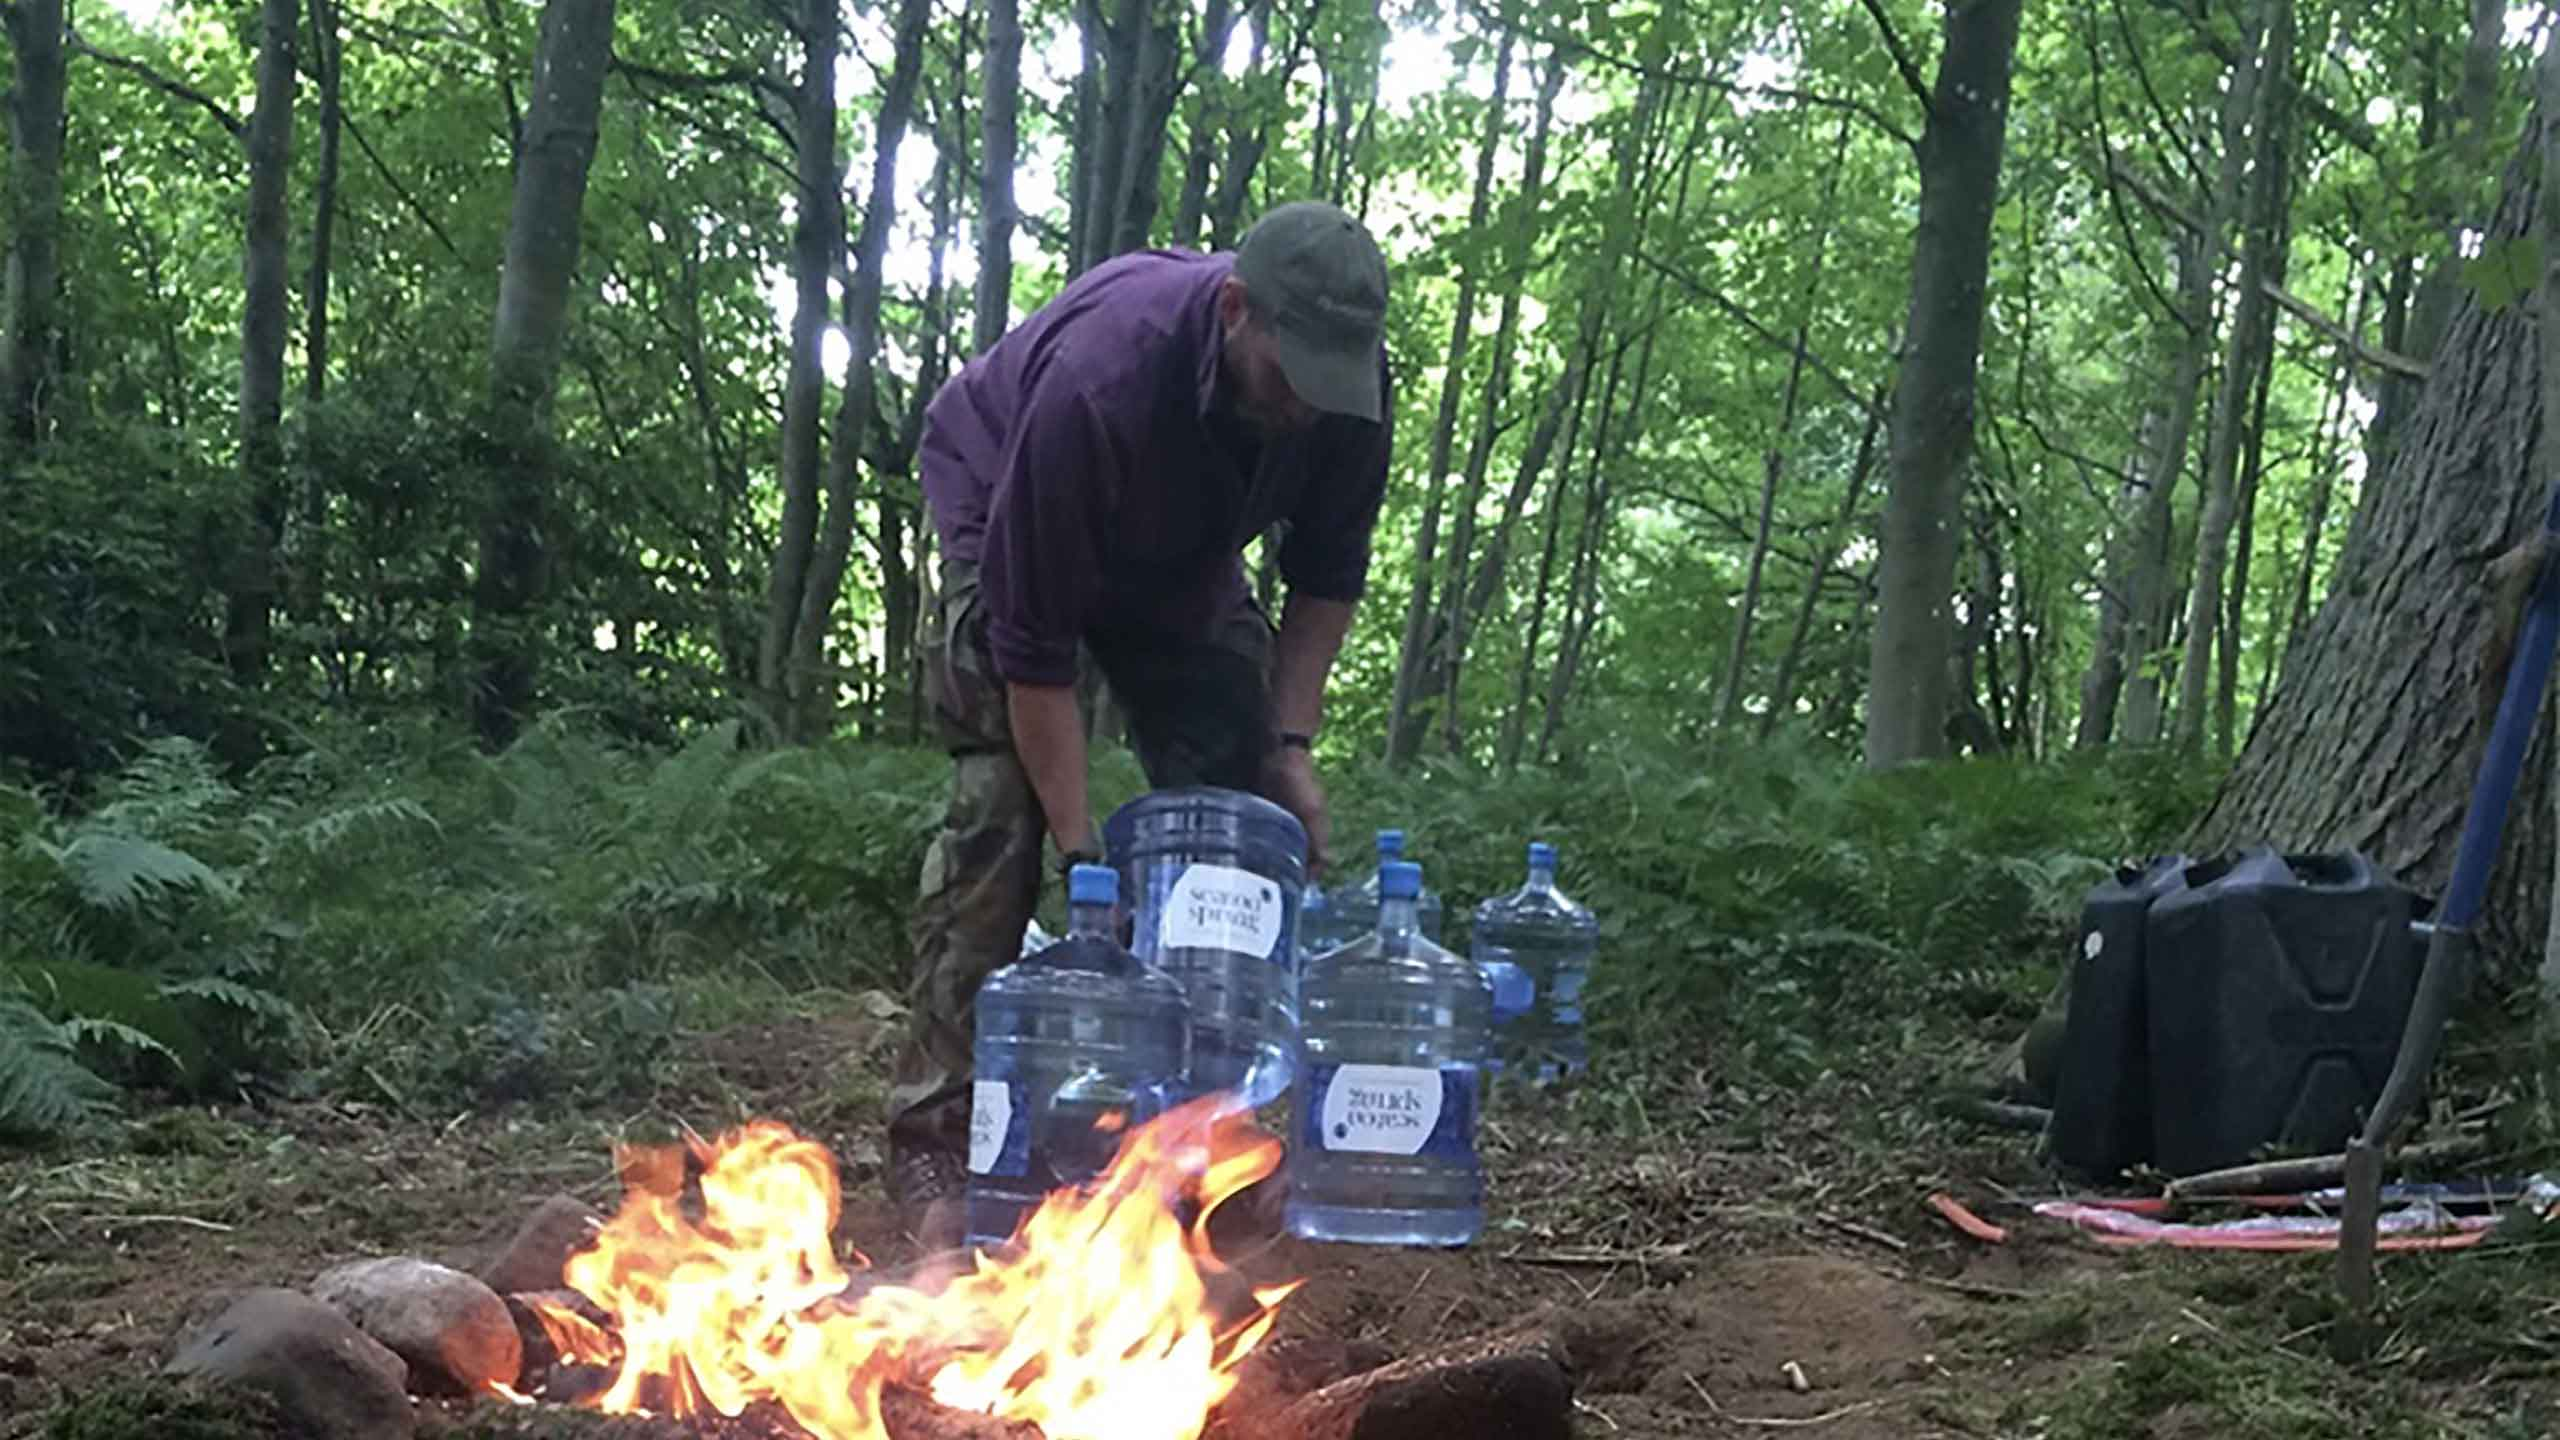 Seaton bottled water at survival camp